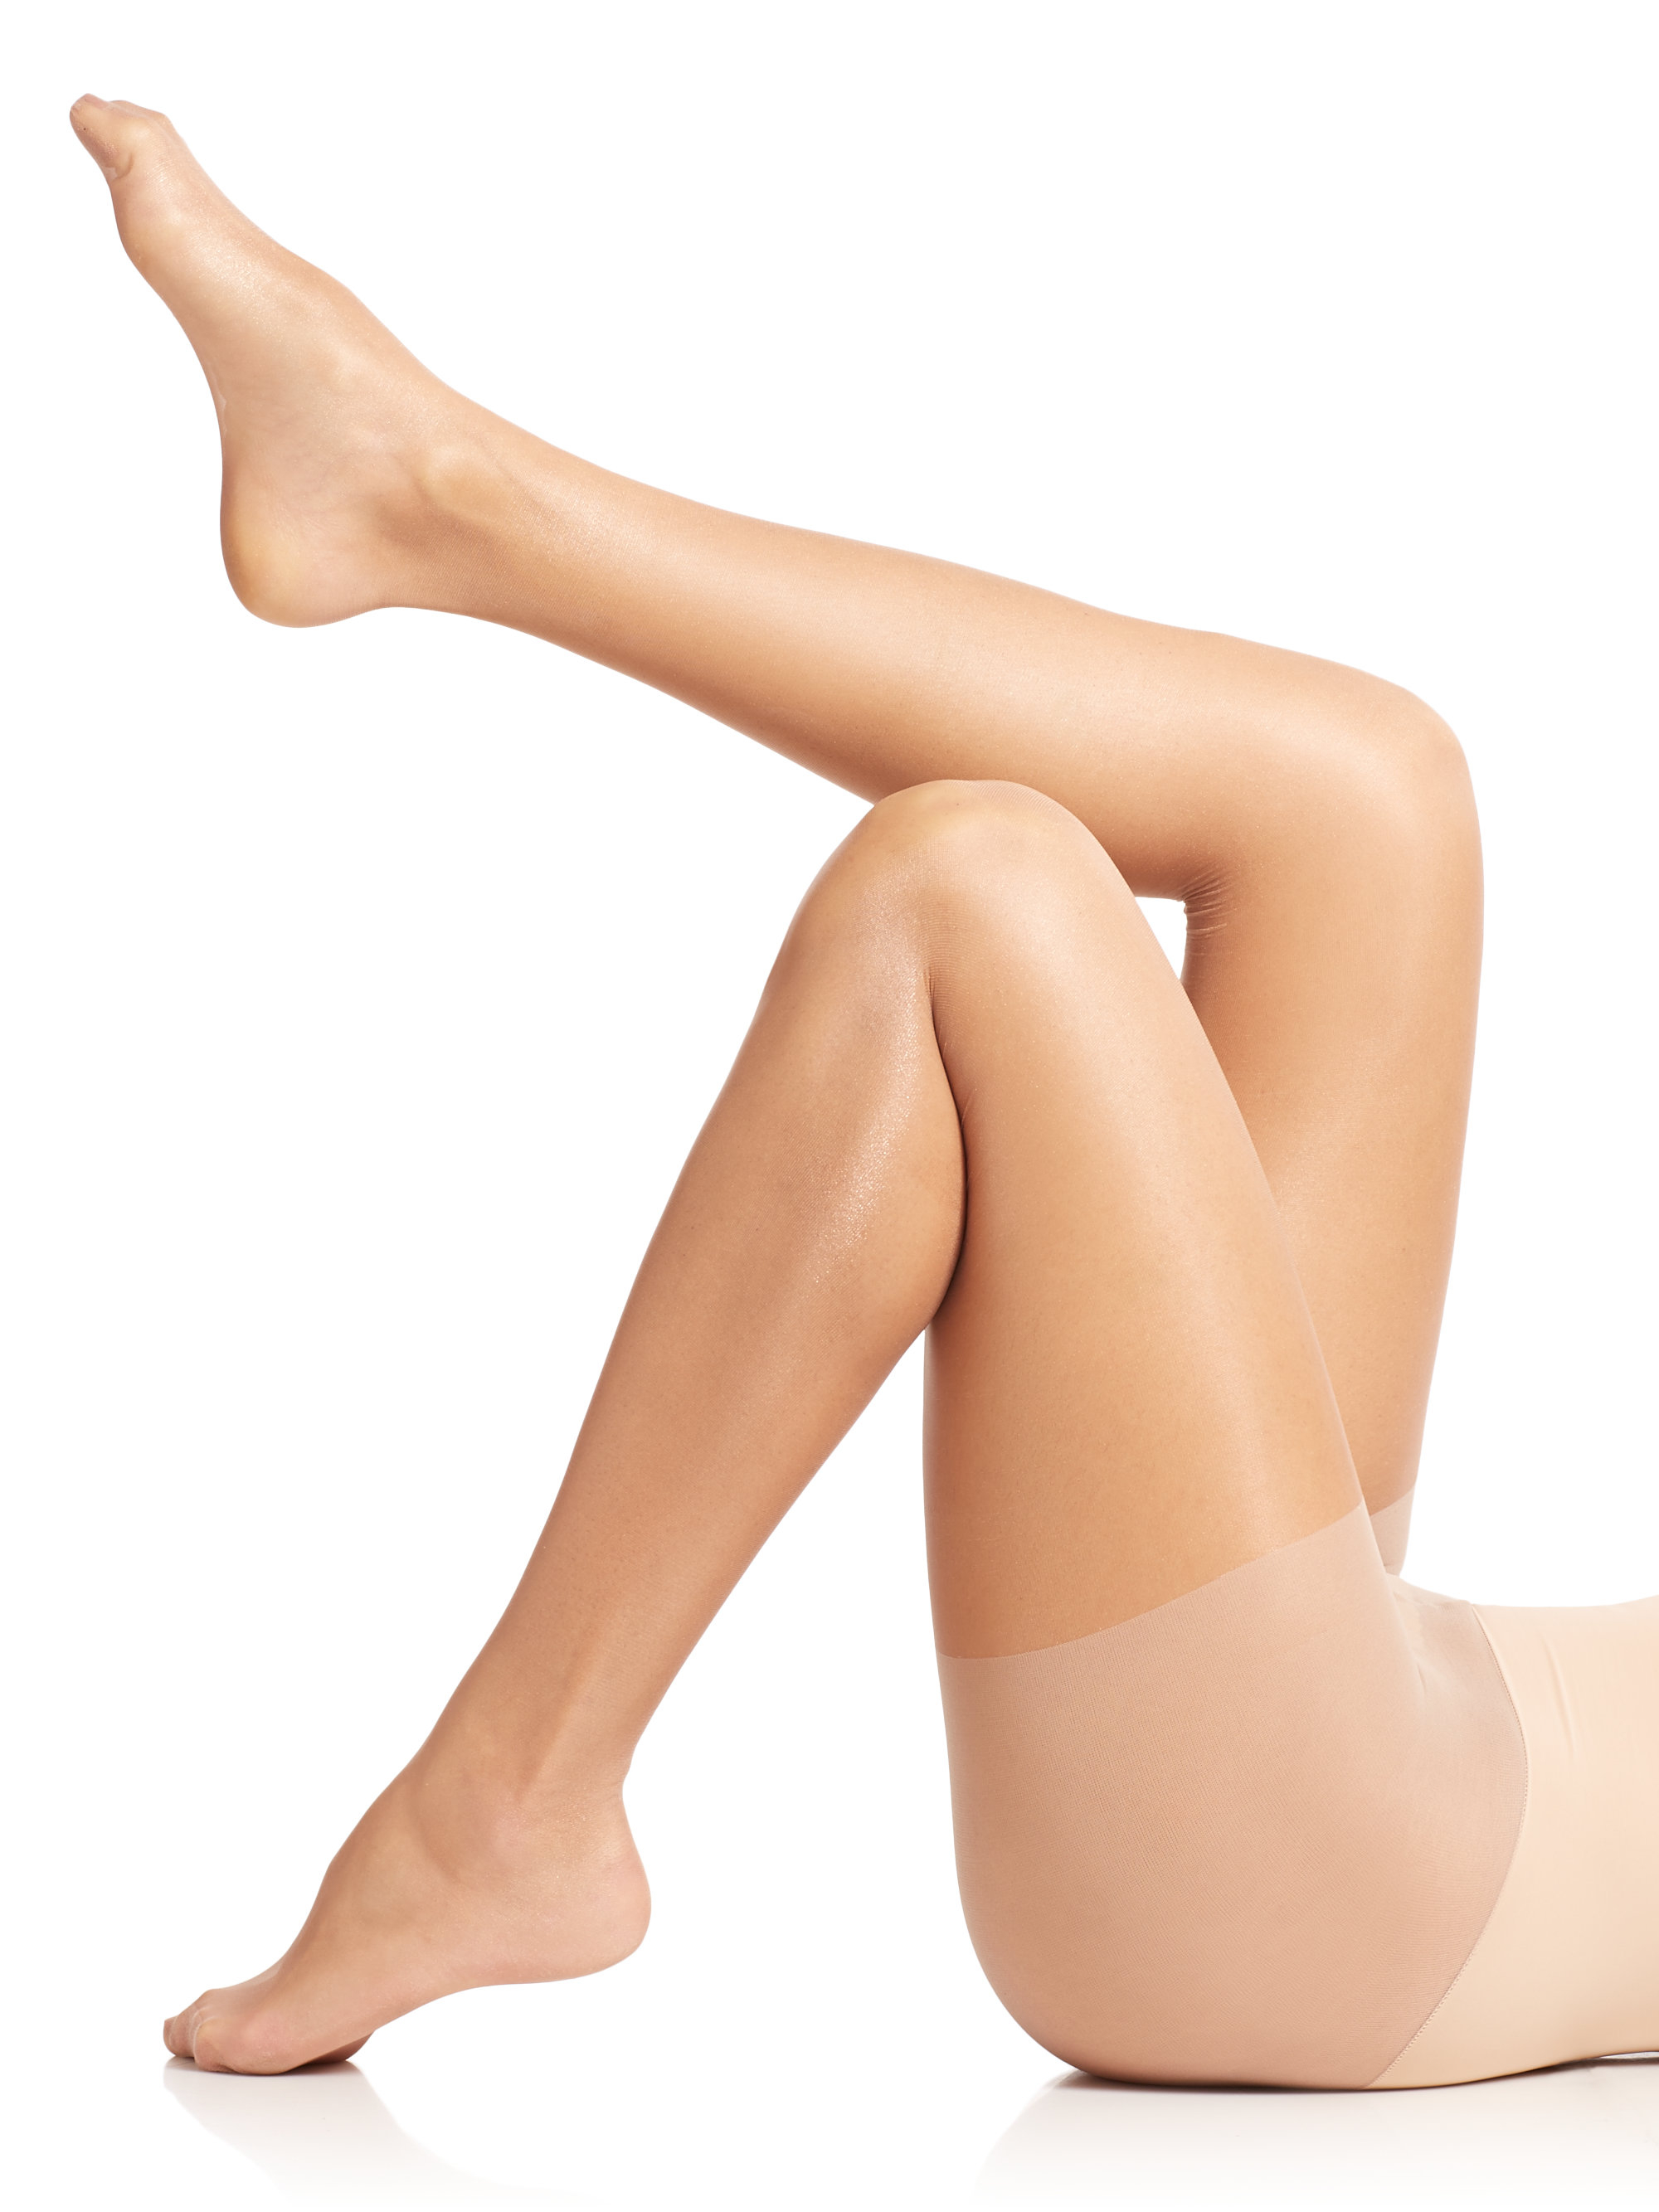 Their Toeless Pantyhose Campaign At 69